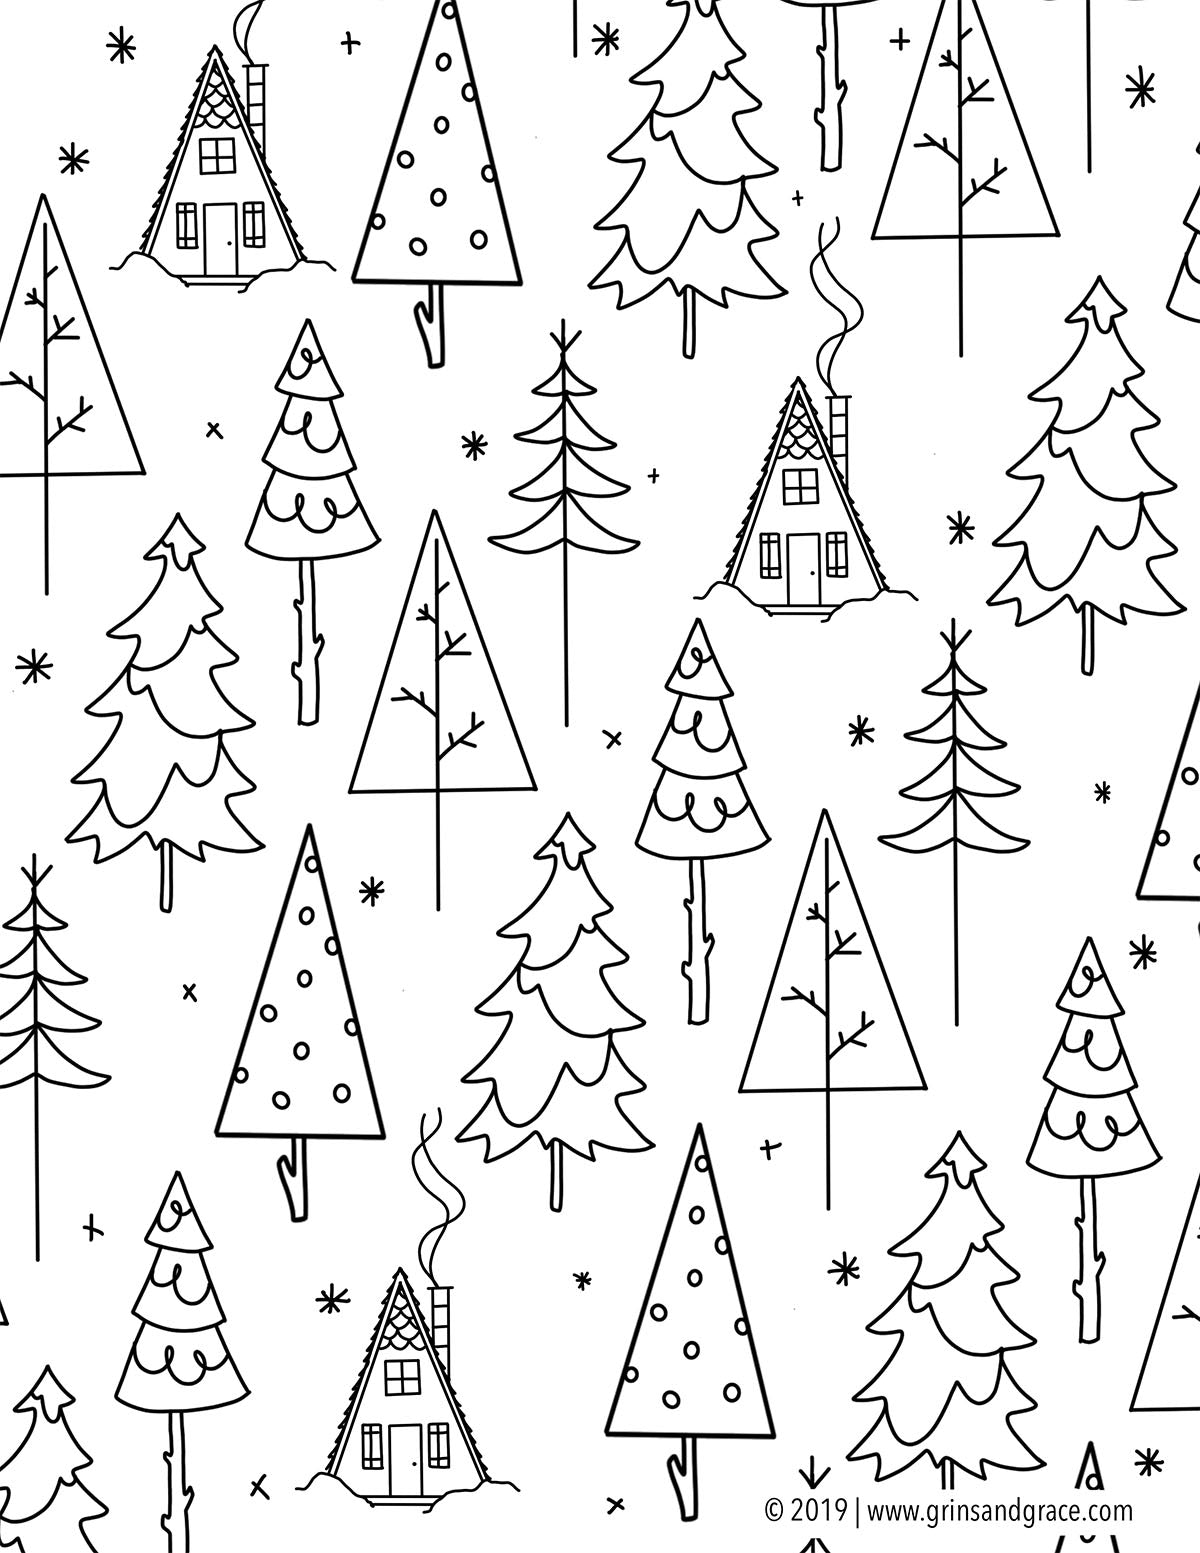 December Coloring Pages that are Perfect for Winter Break ...